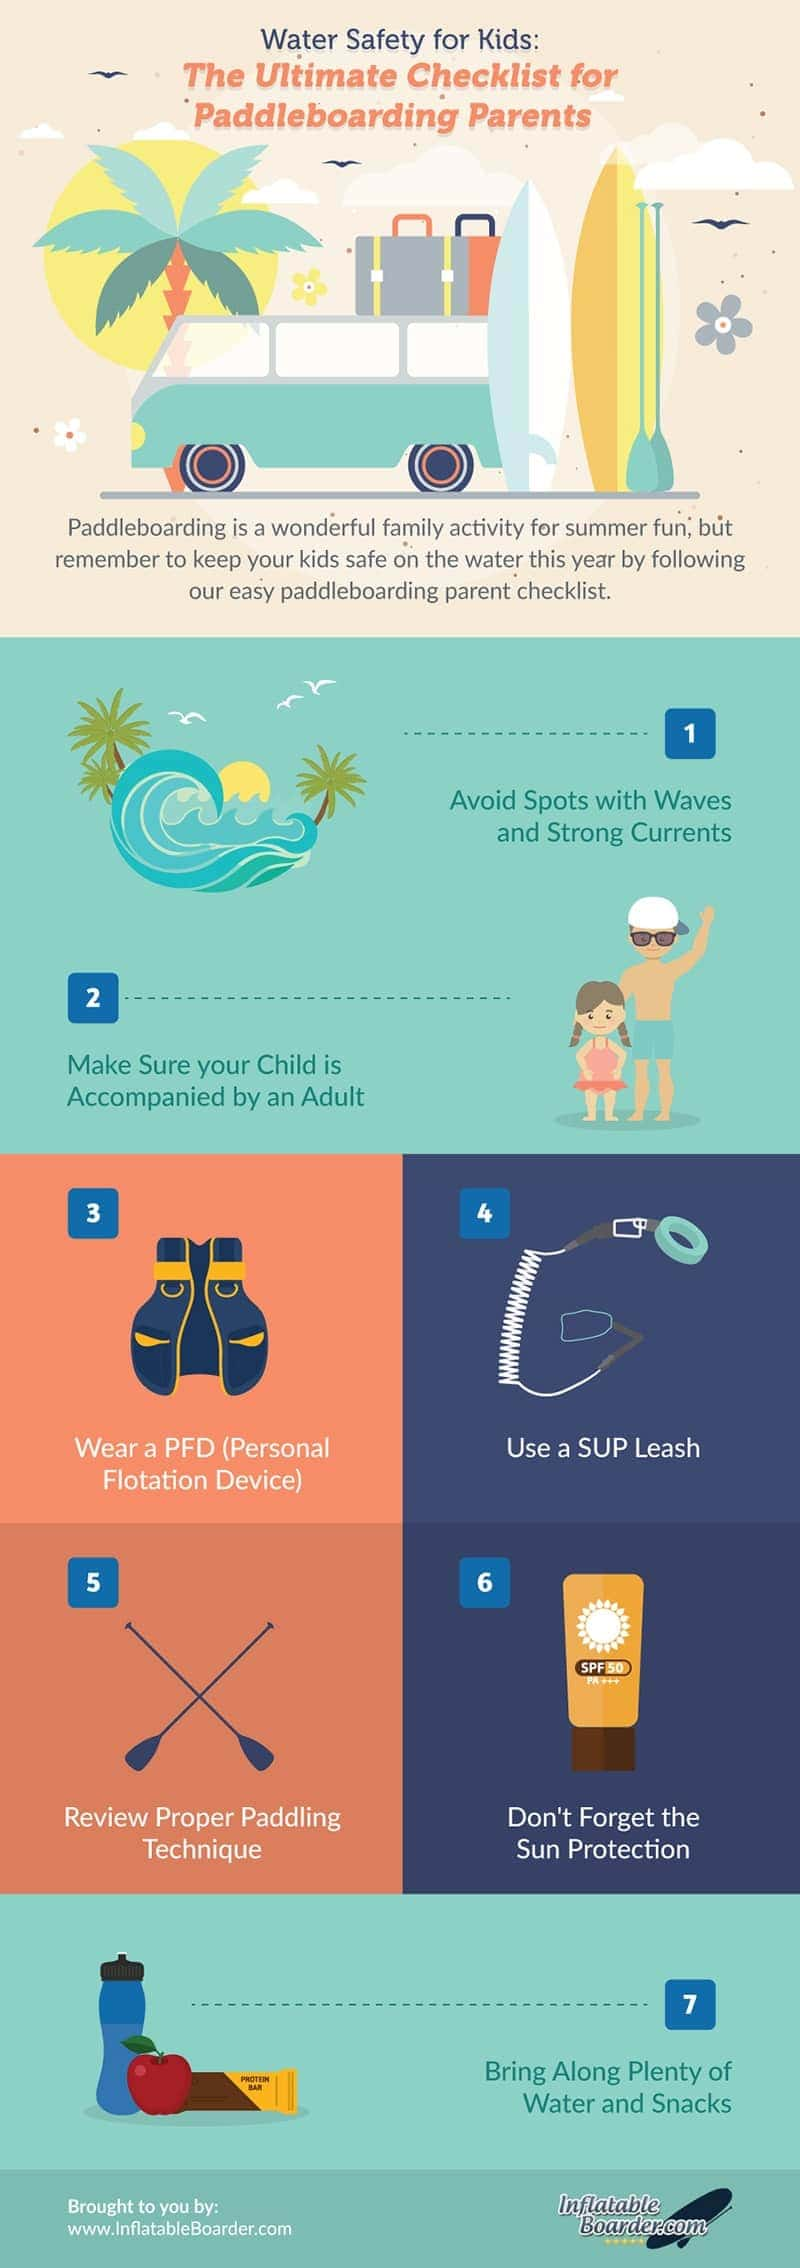 Water Safety for Kids: The Ultimate Checklist for Paddleboarding Parents